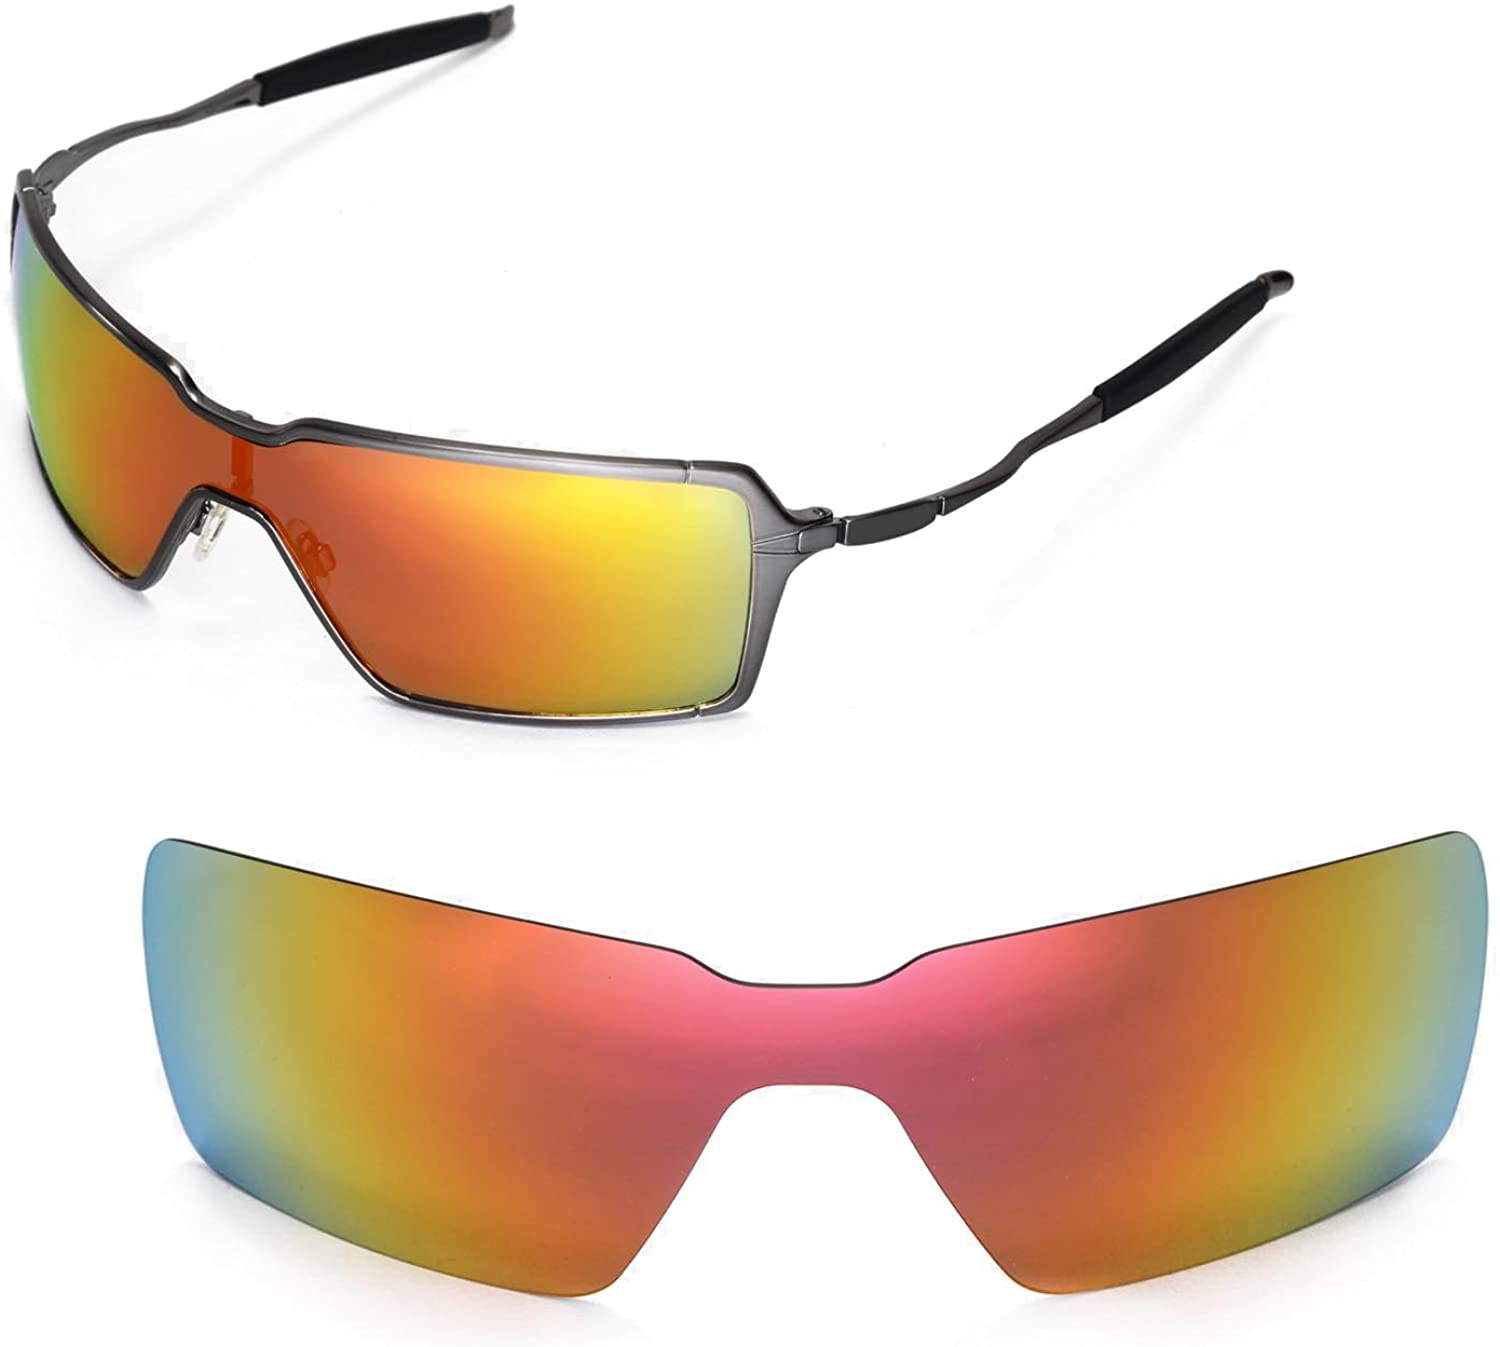 Walleva Replacement Lenses for Oakley Probation Sunglasses - 9 Options Available